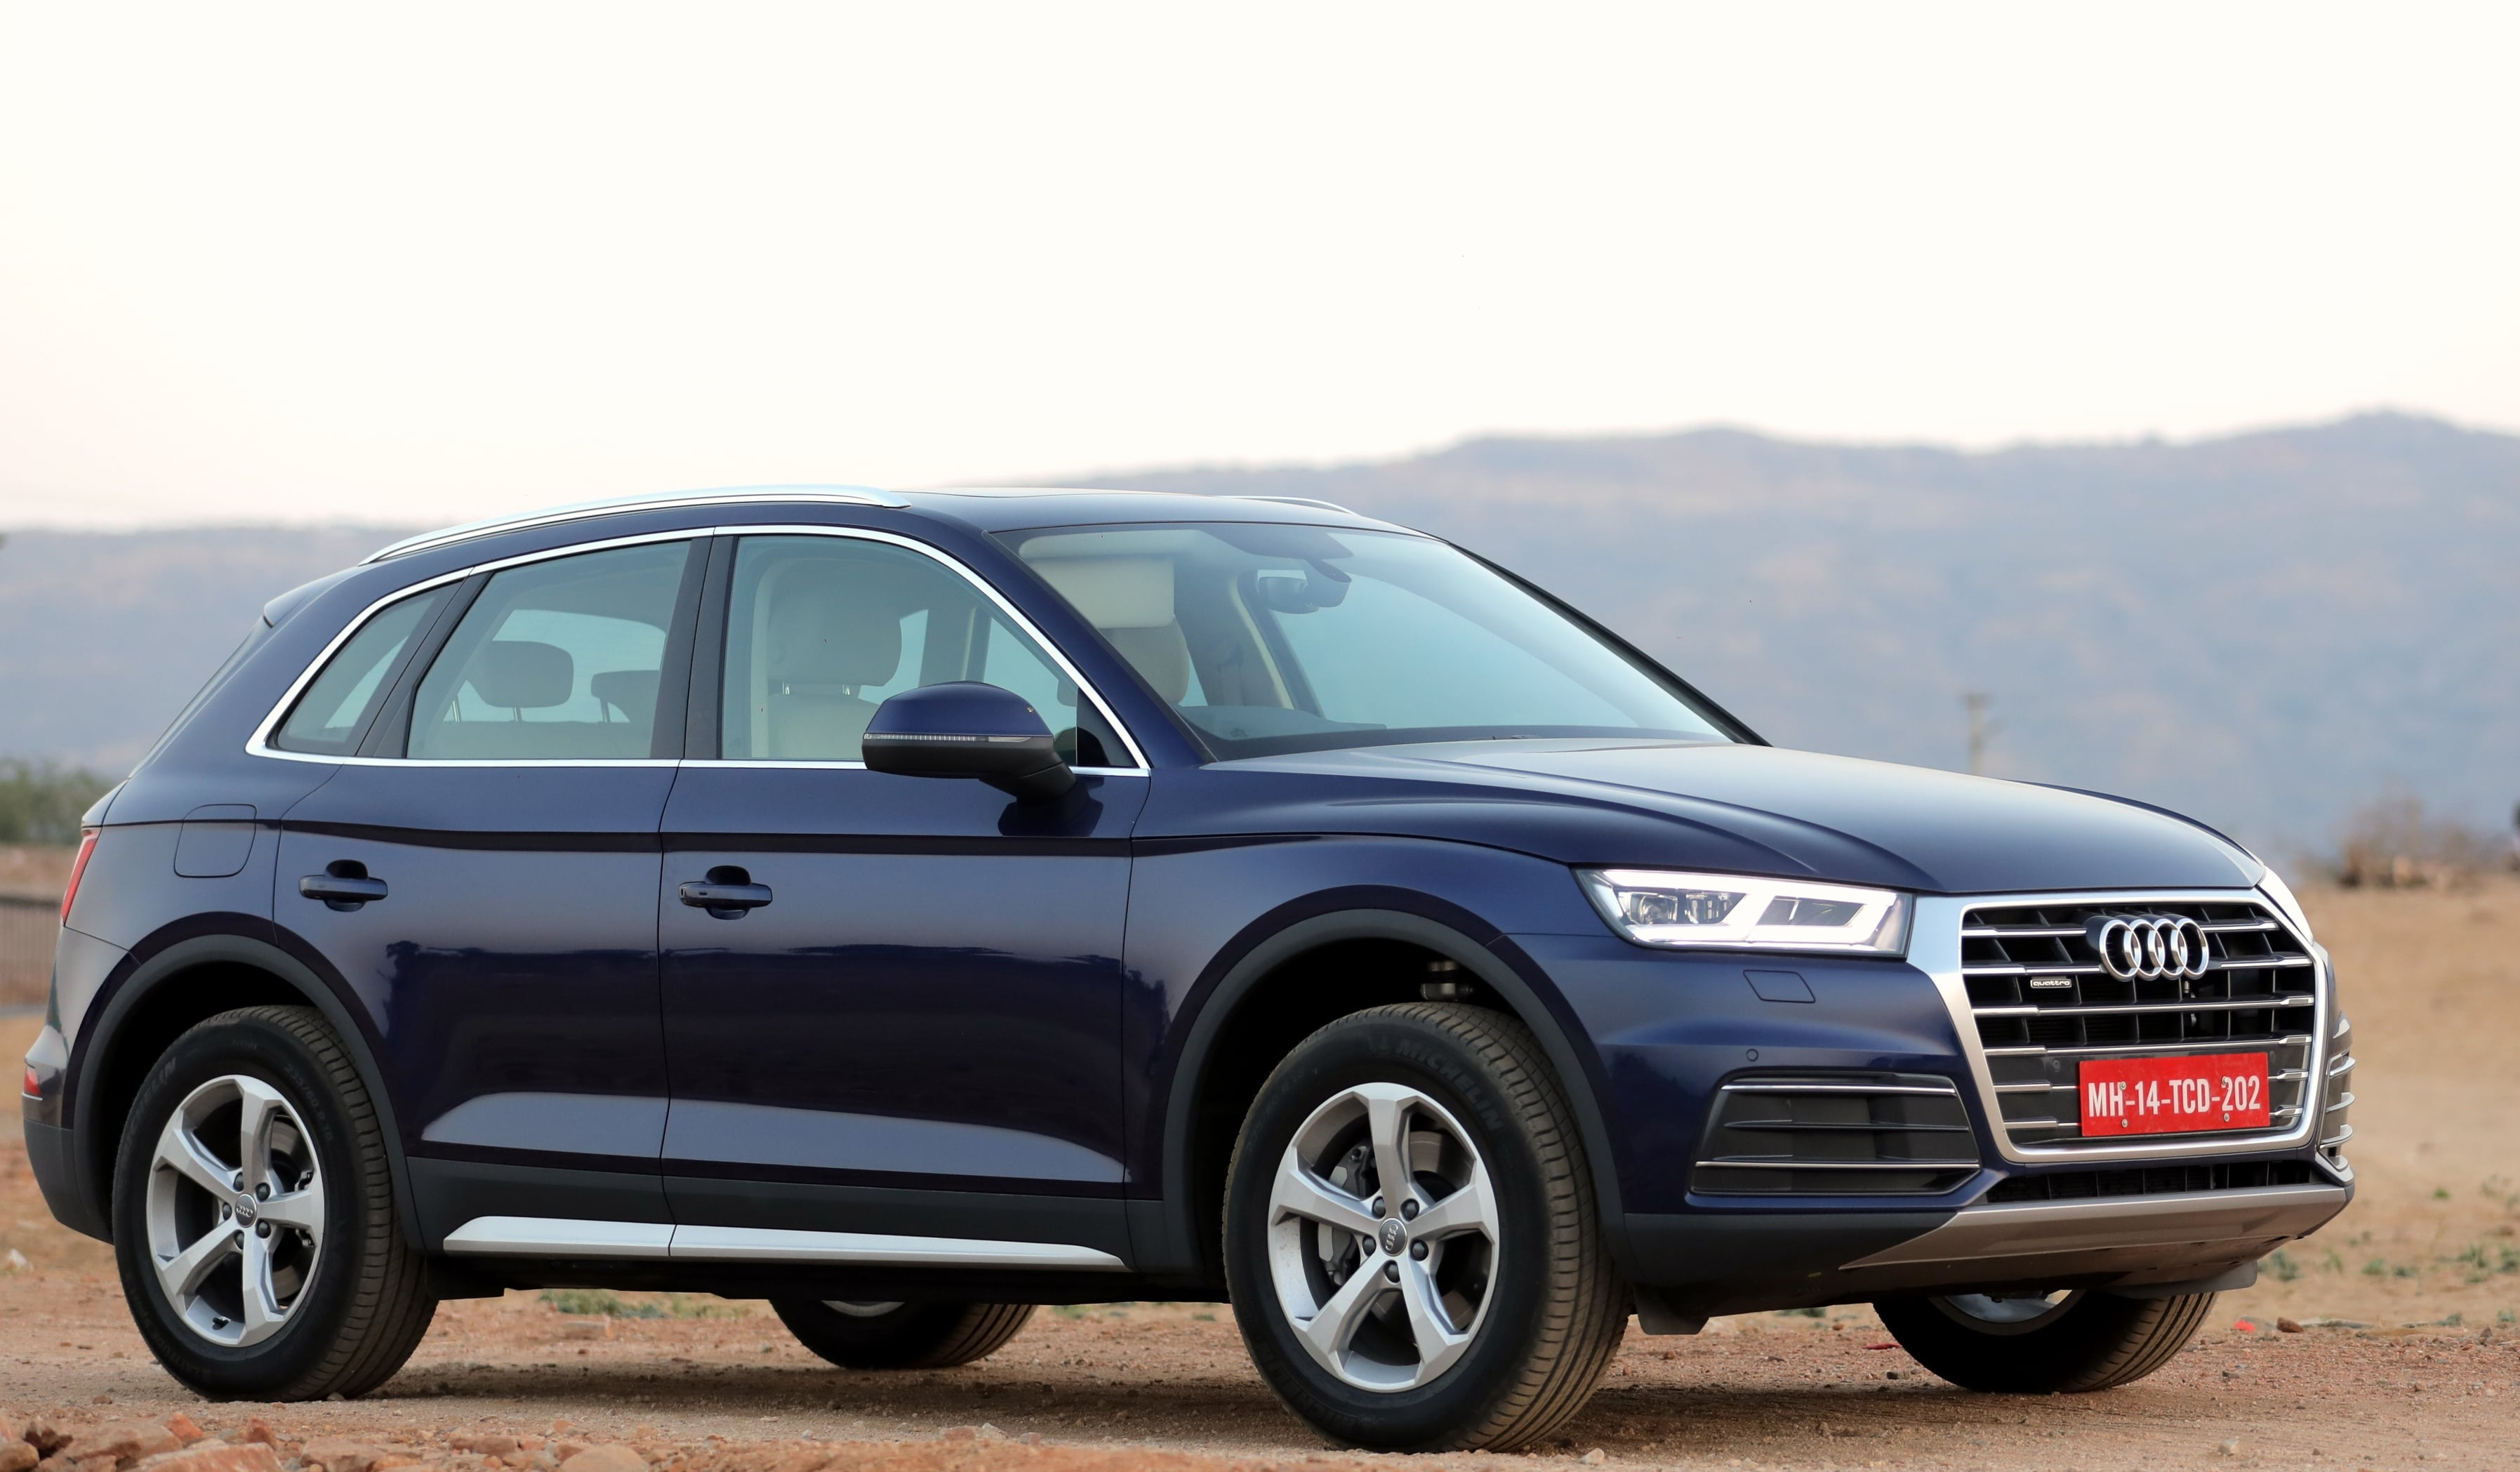 New 2018 Audi Q5 Launched in India - Prices, Features, Specifications